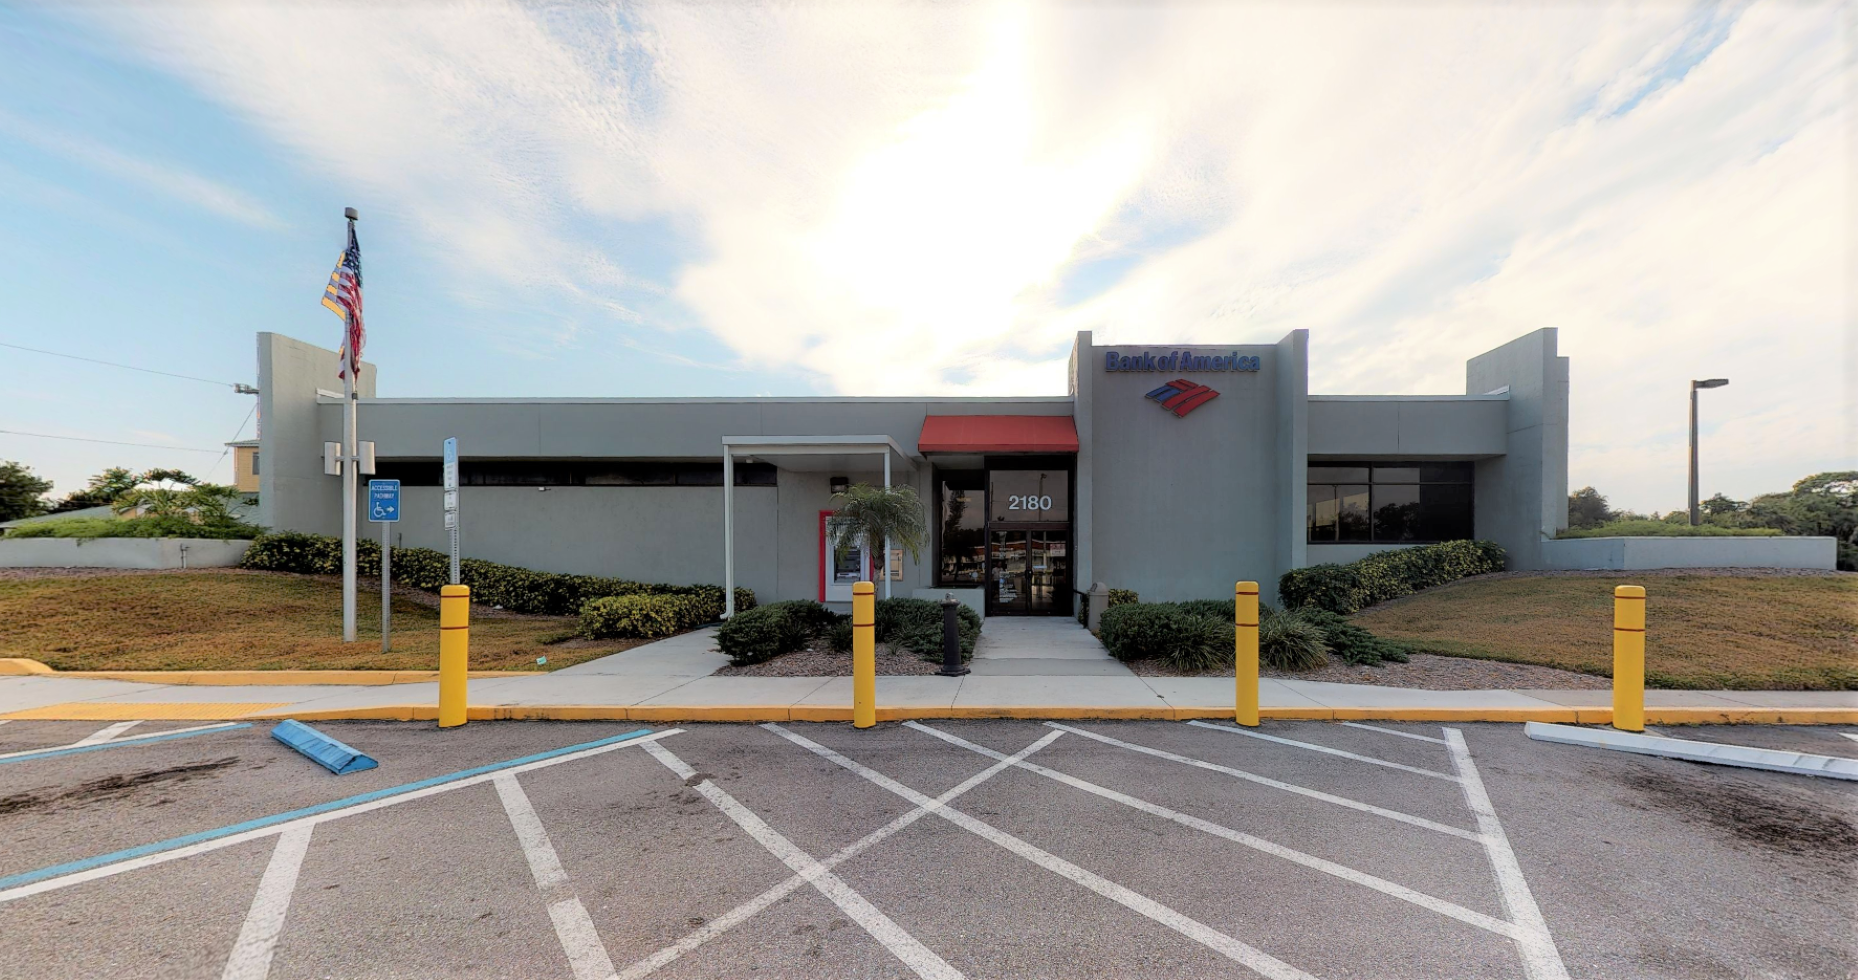 Bank of America financial center with drive-thru ATM | 2180 S Tamiami Trl, Venice, FL 34293